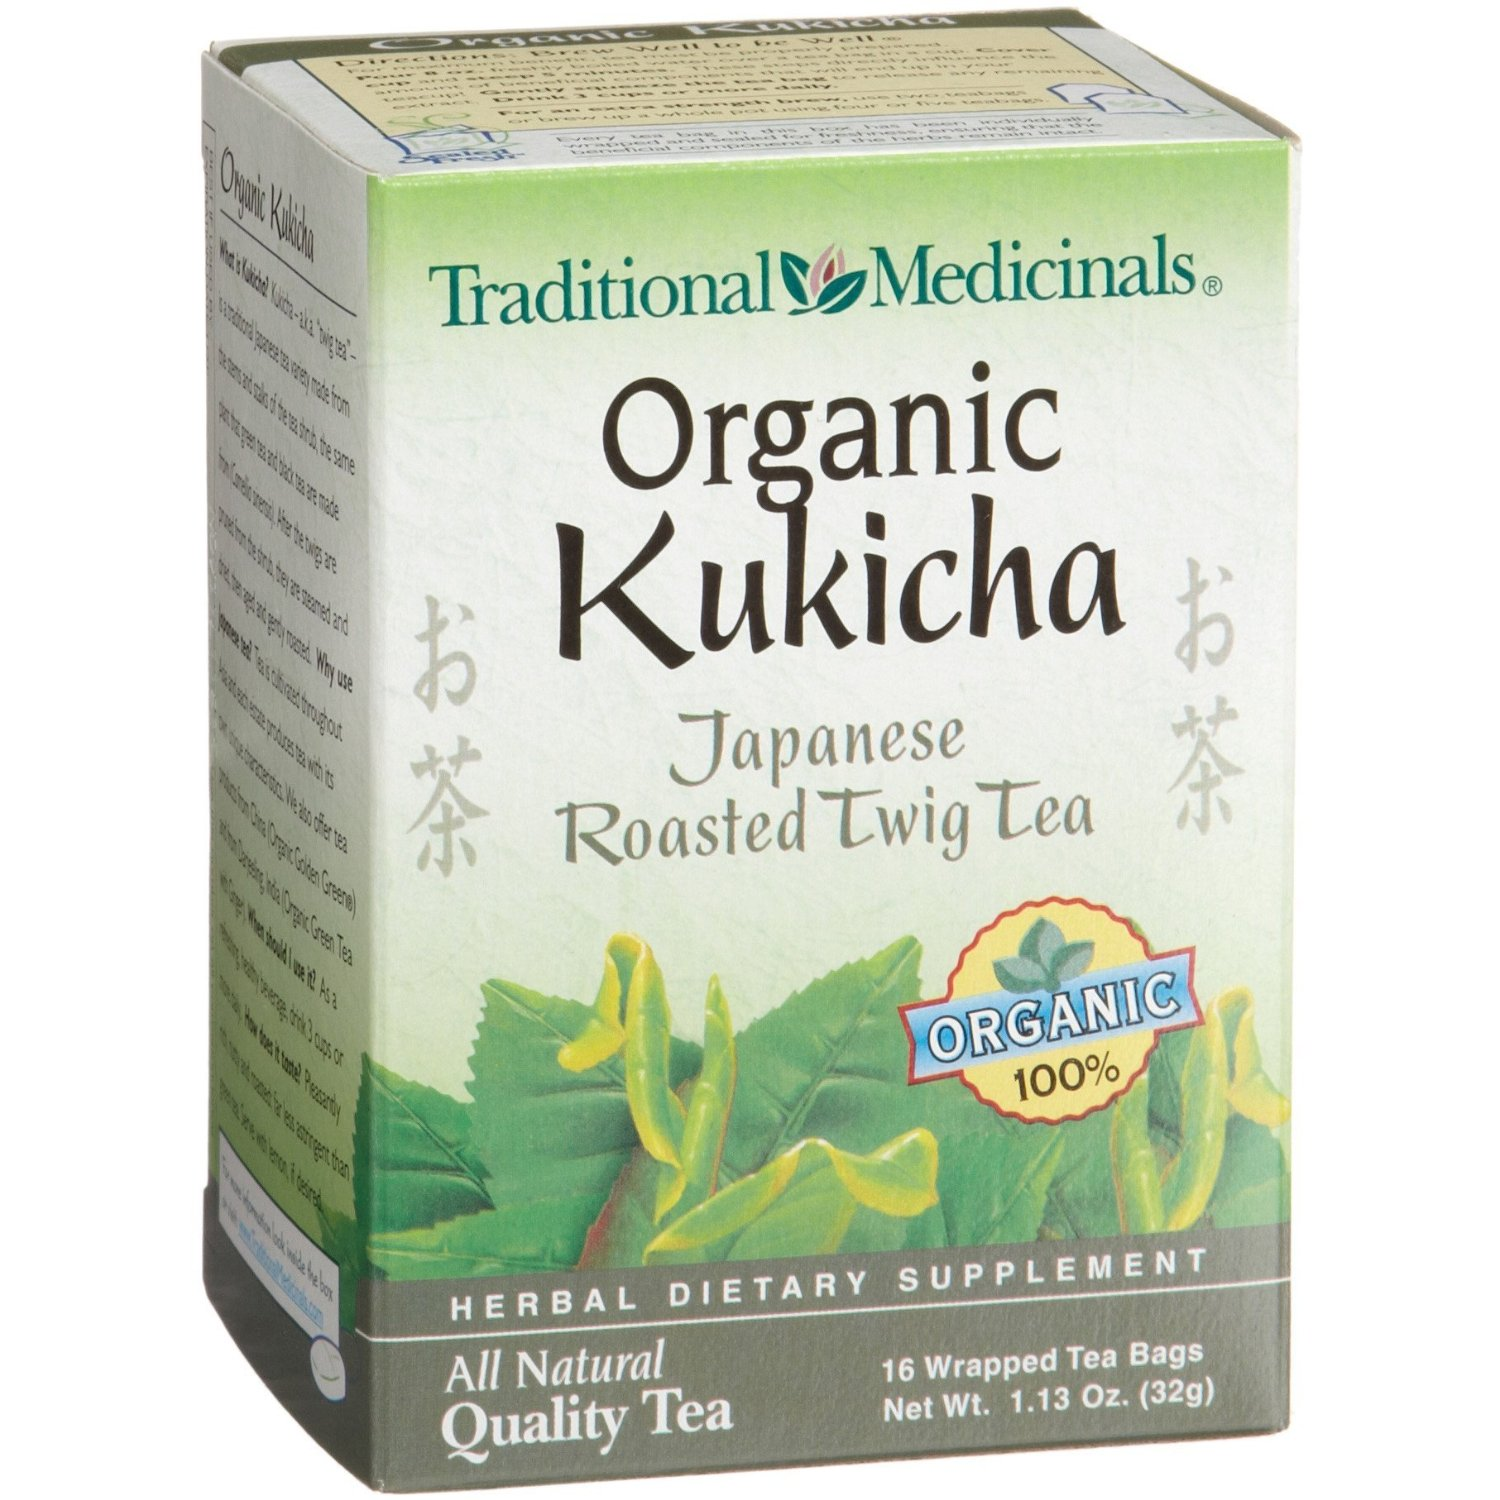 I love this kukicha tea. It's roasted and tasty and superhealthy!